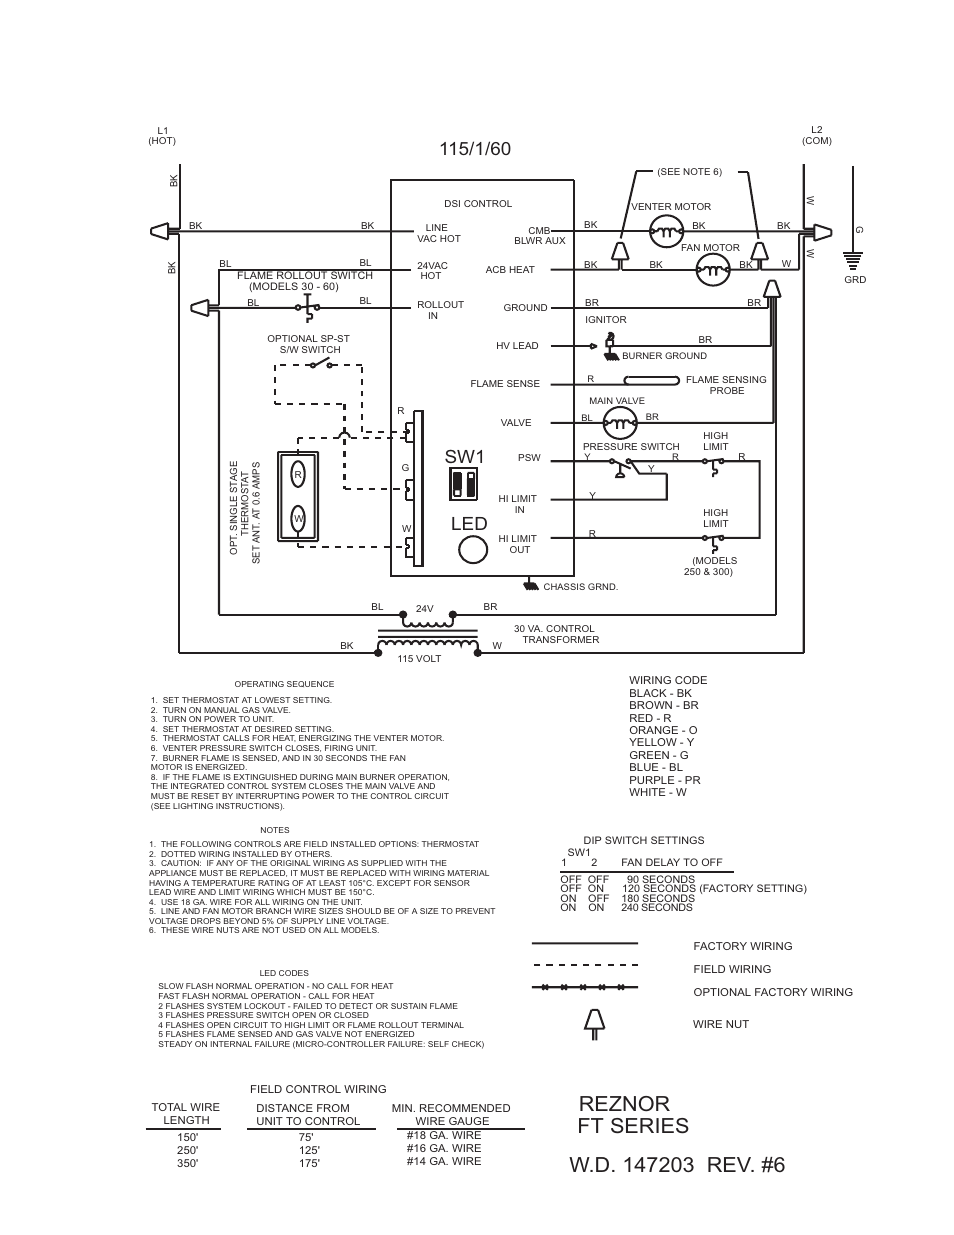 reznor ft unit installation manual page13 garage heater wiring diagram wiring diagram byblank gas heater wiring diagram at n-0.co